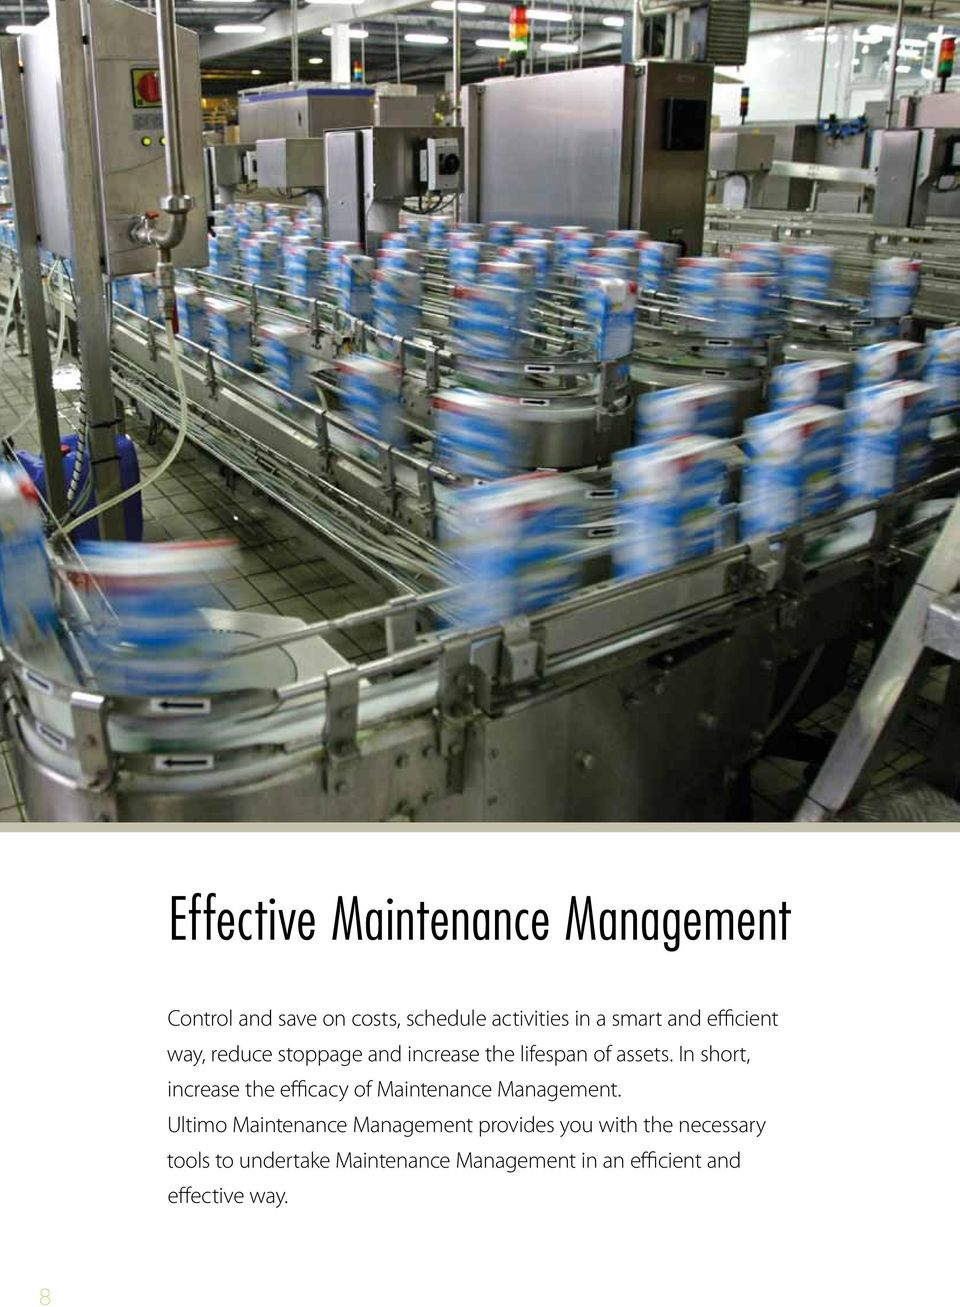 In short, increase the efficacy of Maintenance Management.